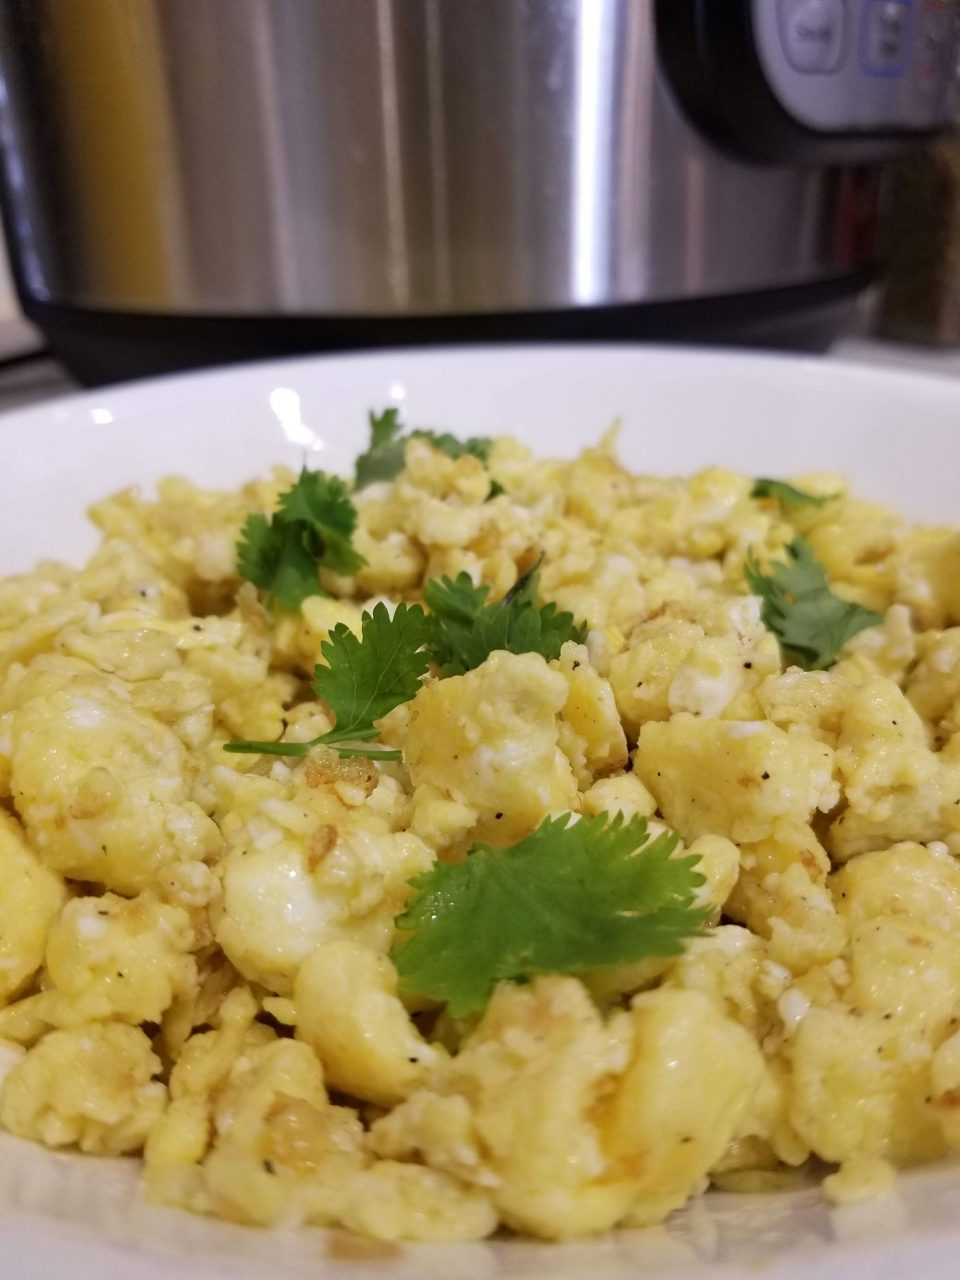 scrambled eggs in instant pot without burning